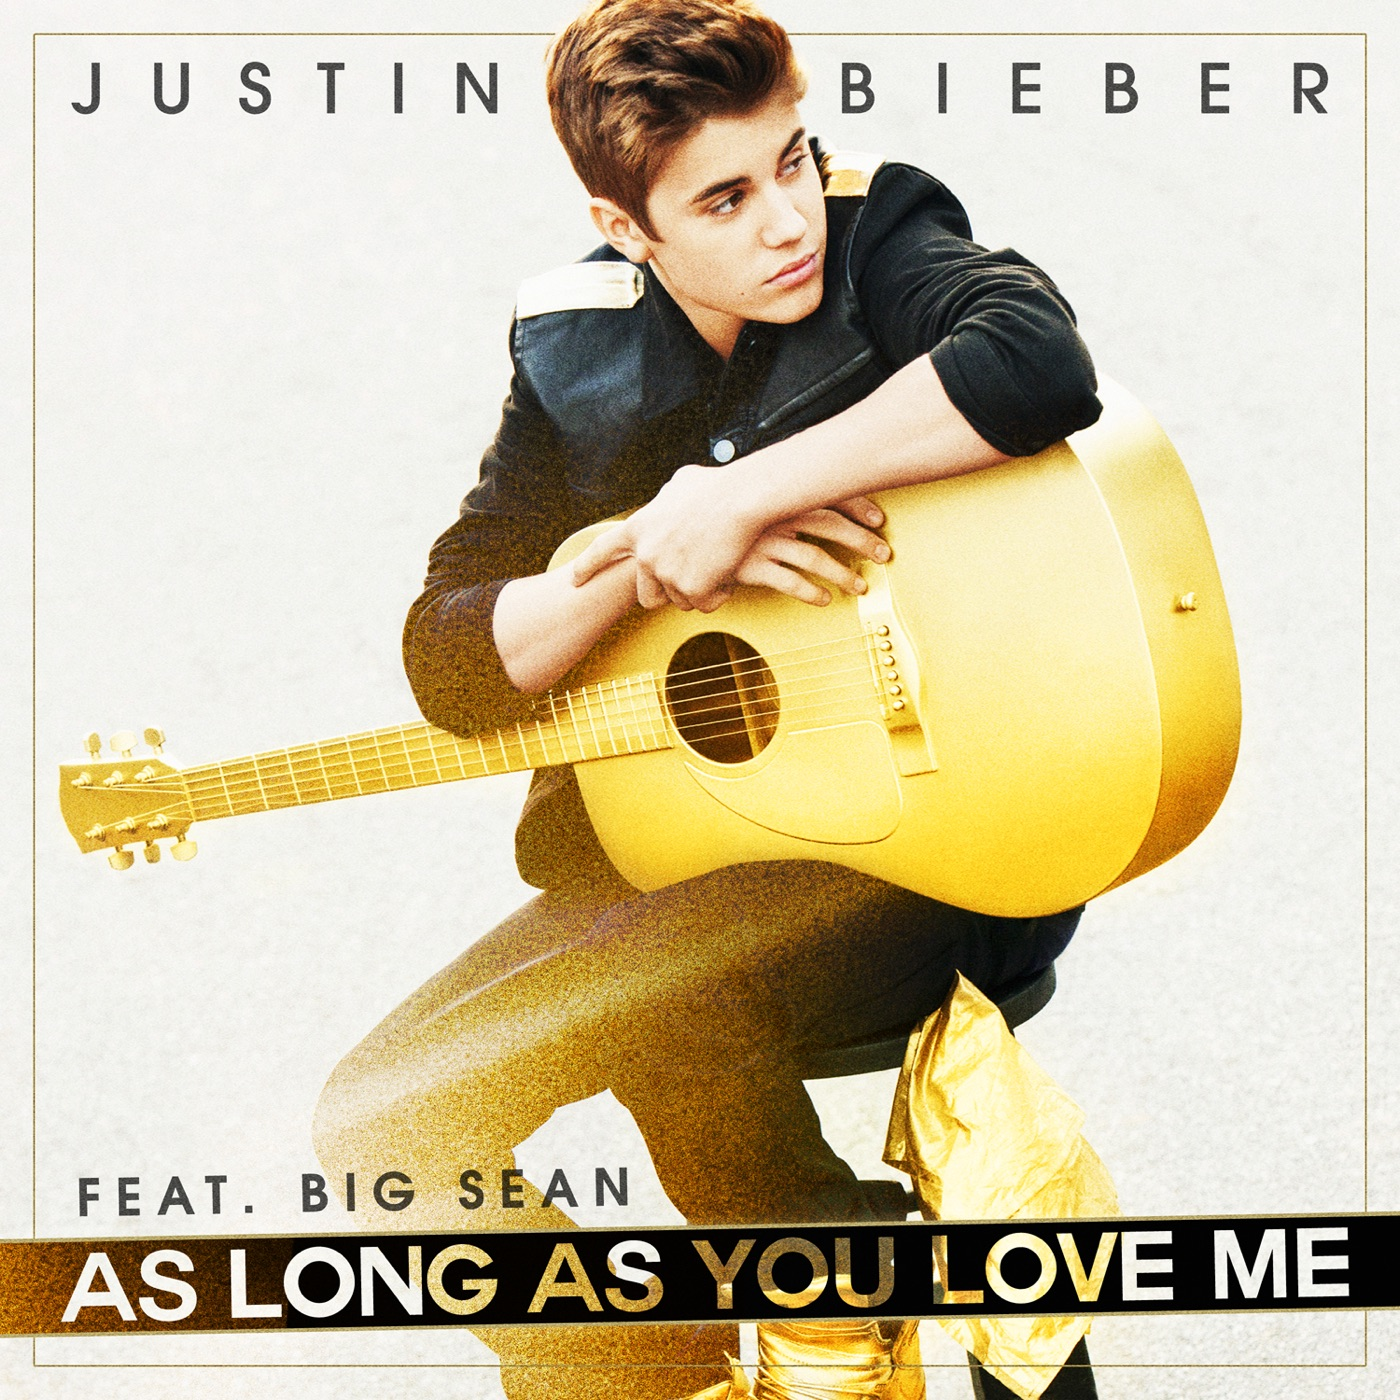 Justin Bieber - As Long As You Love Me (feat. Big Sean) - Single Cover